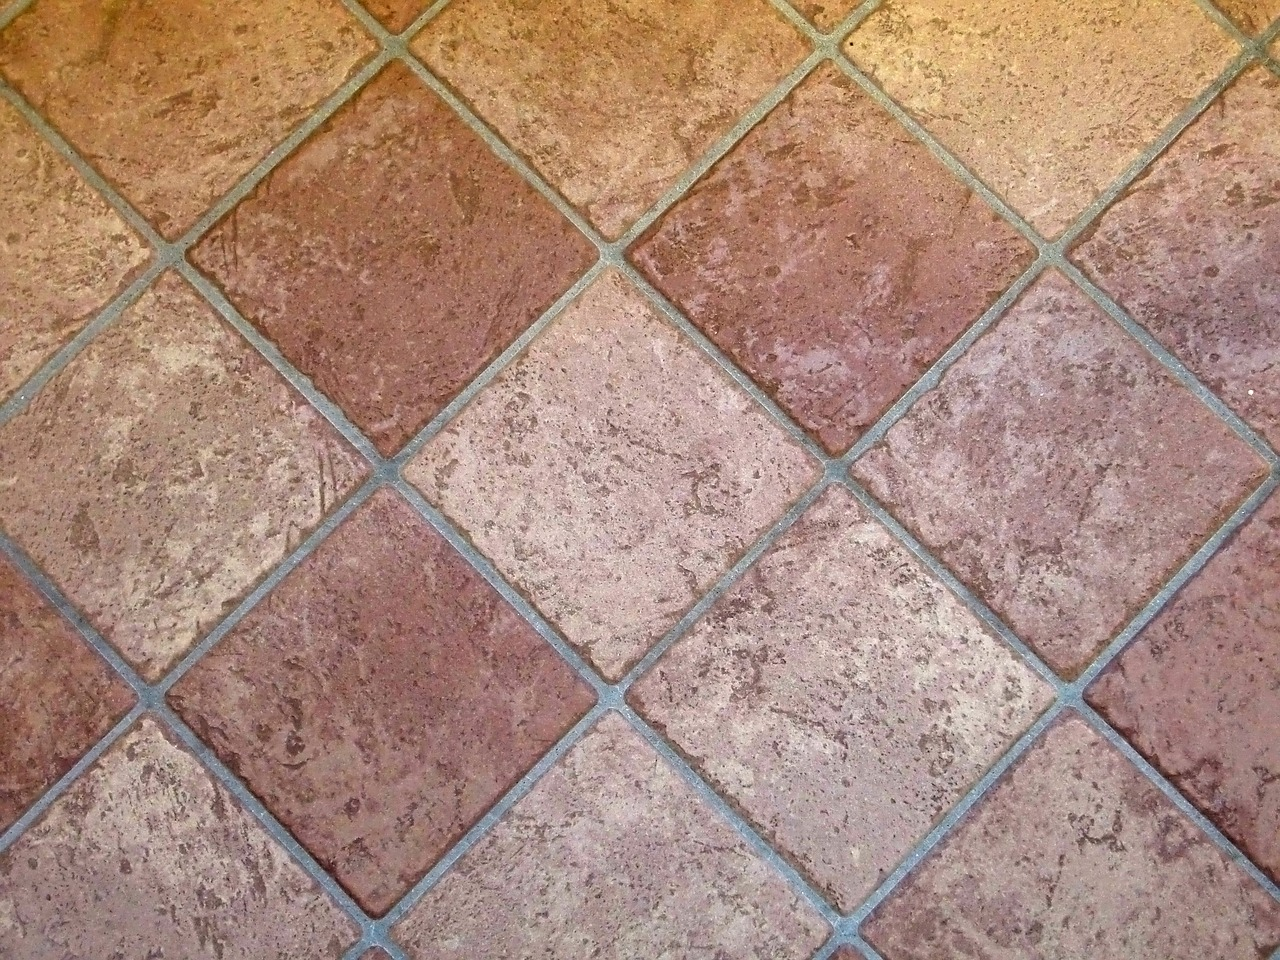 title cleaning in racine, rqcine tile cleaning, best tile cleaning in racine